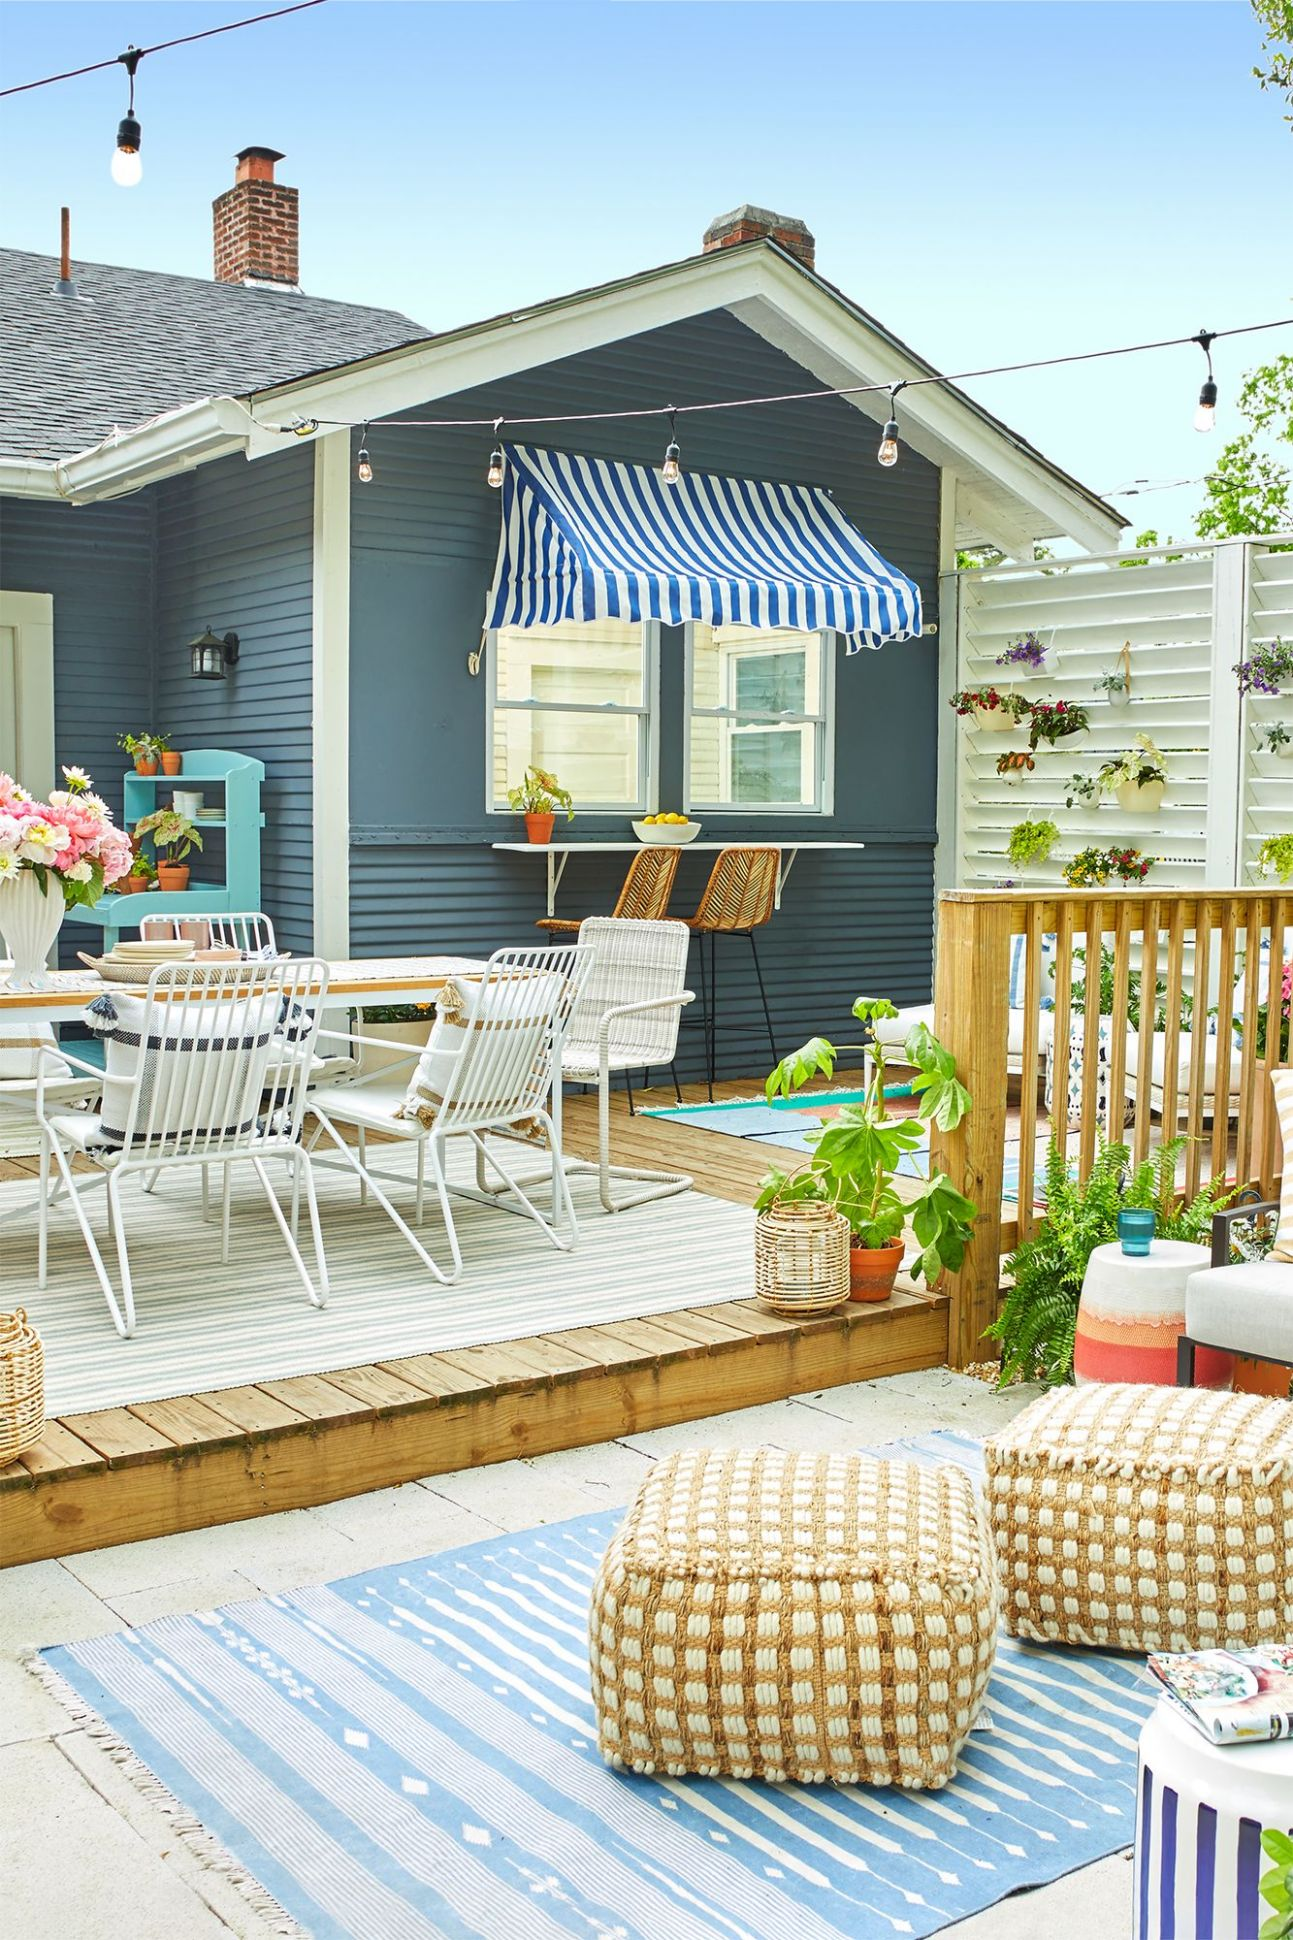 12 Small Backyard Ideas - Small Backyard Landscaping and Patio Designs - backyard ideas pictures